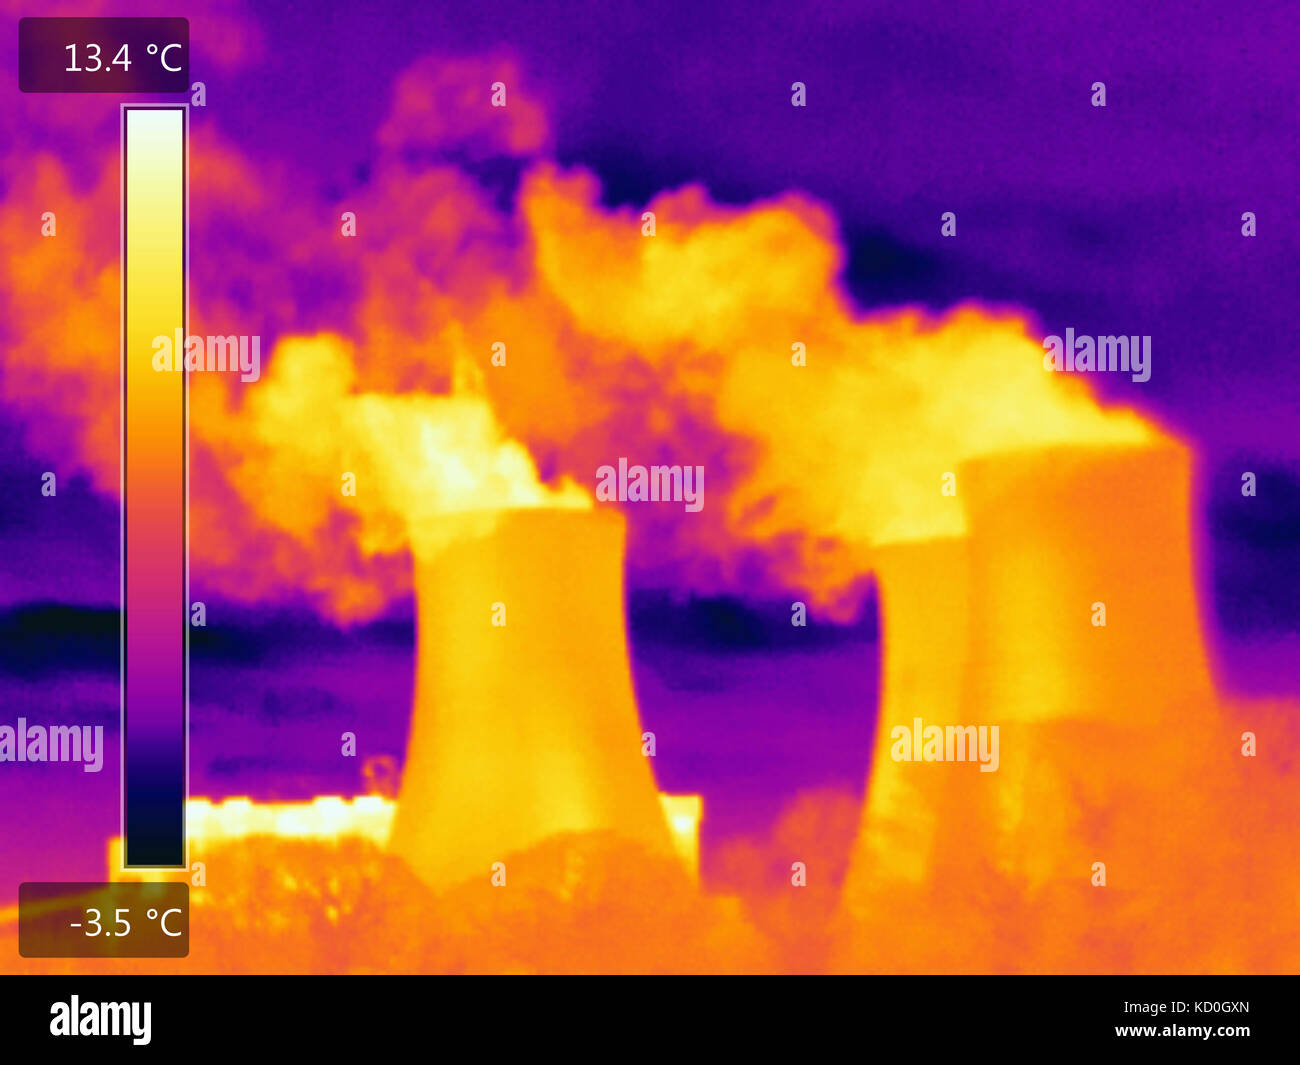 Thermal image of power station, smoke pouring from chimneys - Stock Image